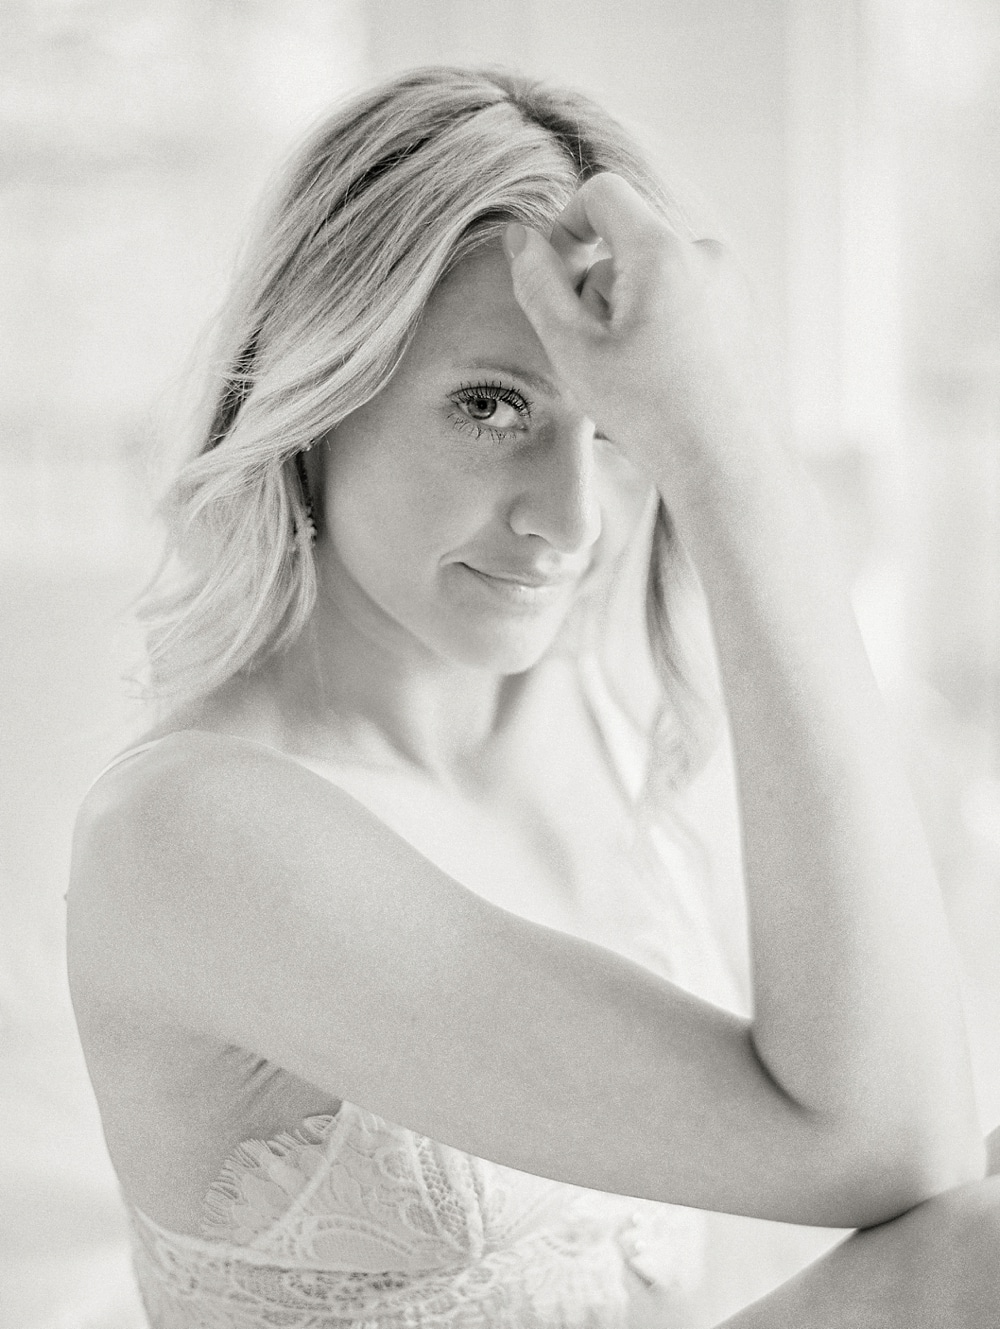 Kristin-La-Voie-Photography-fine-art-wedding-boudoir-texas-photographer-Dallas-Austin-San-Marcos-103